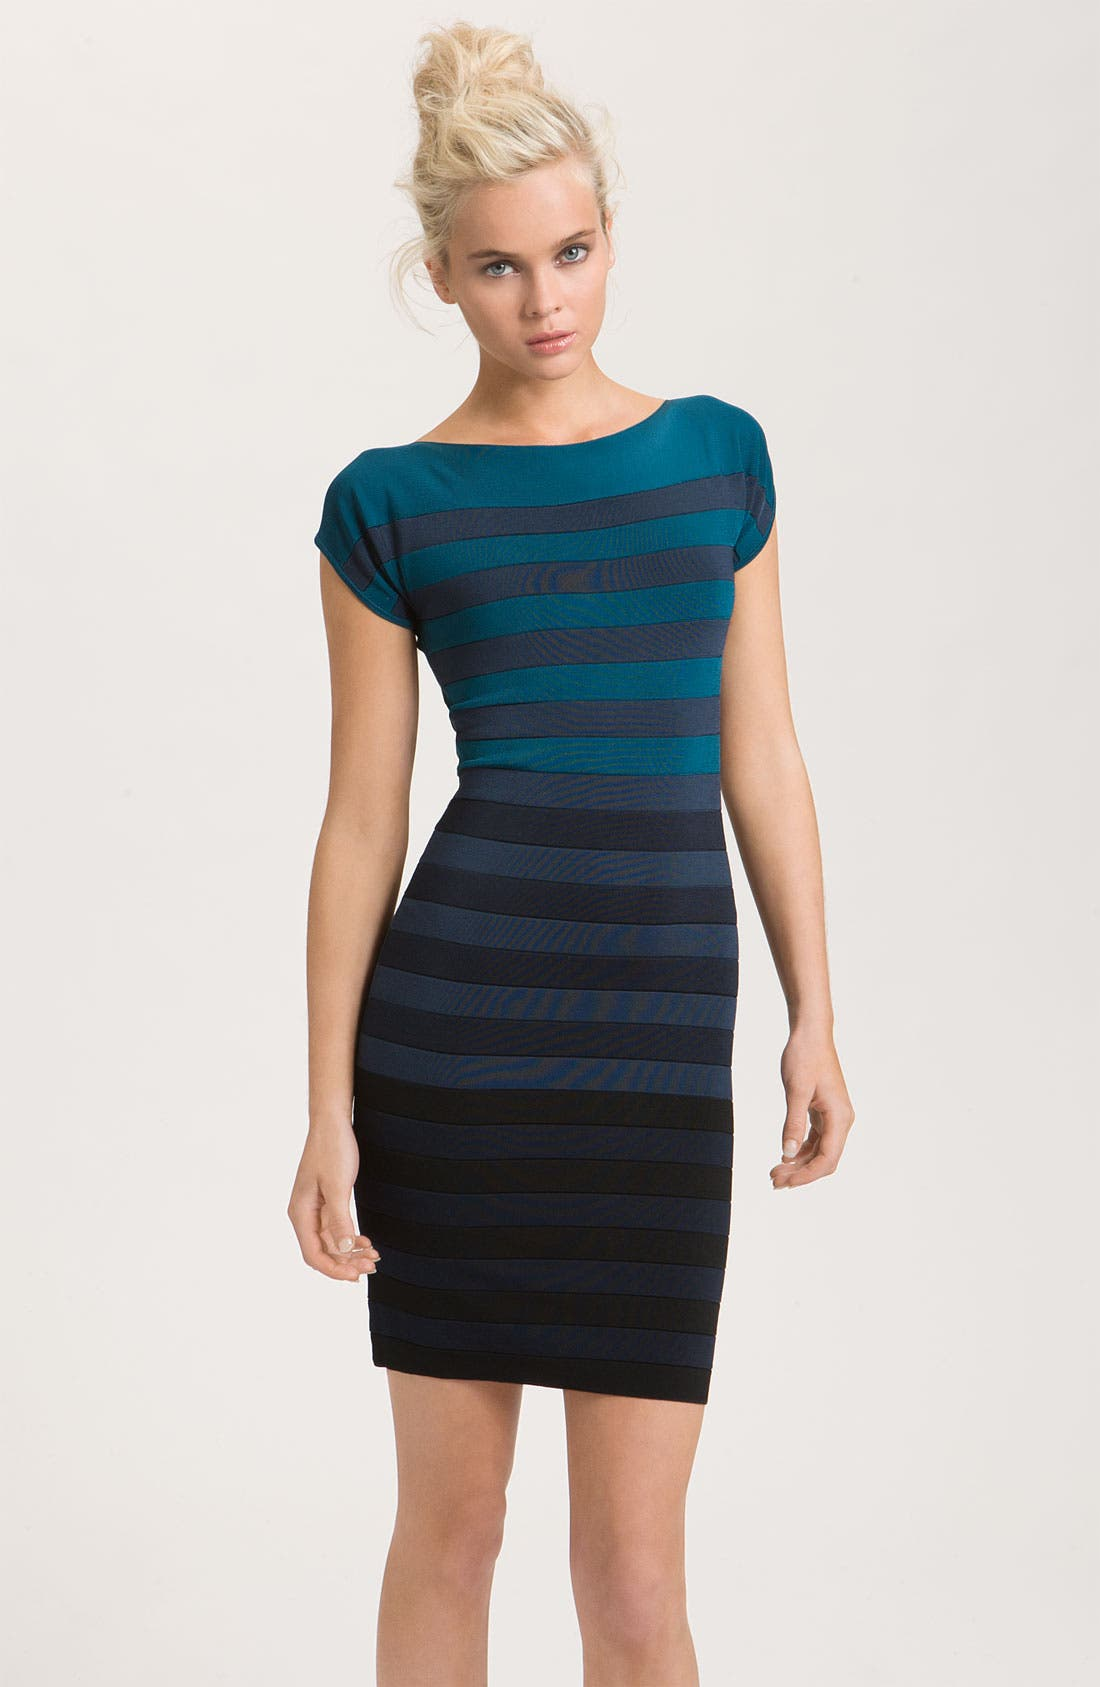 Alternate Image 1 Selected - French Connection 'Ribbon Stripe' Knit Sheath Dress